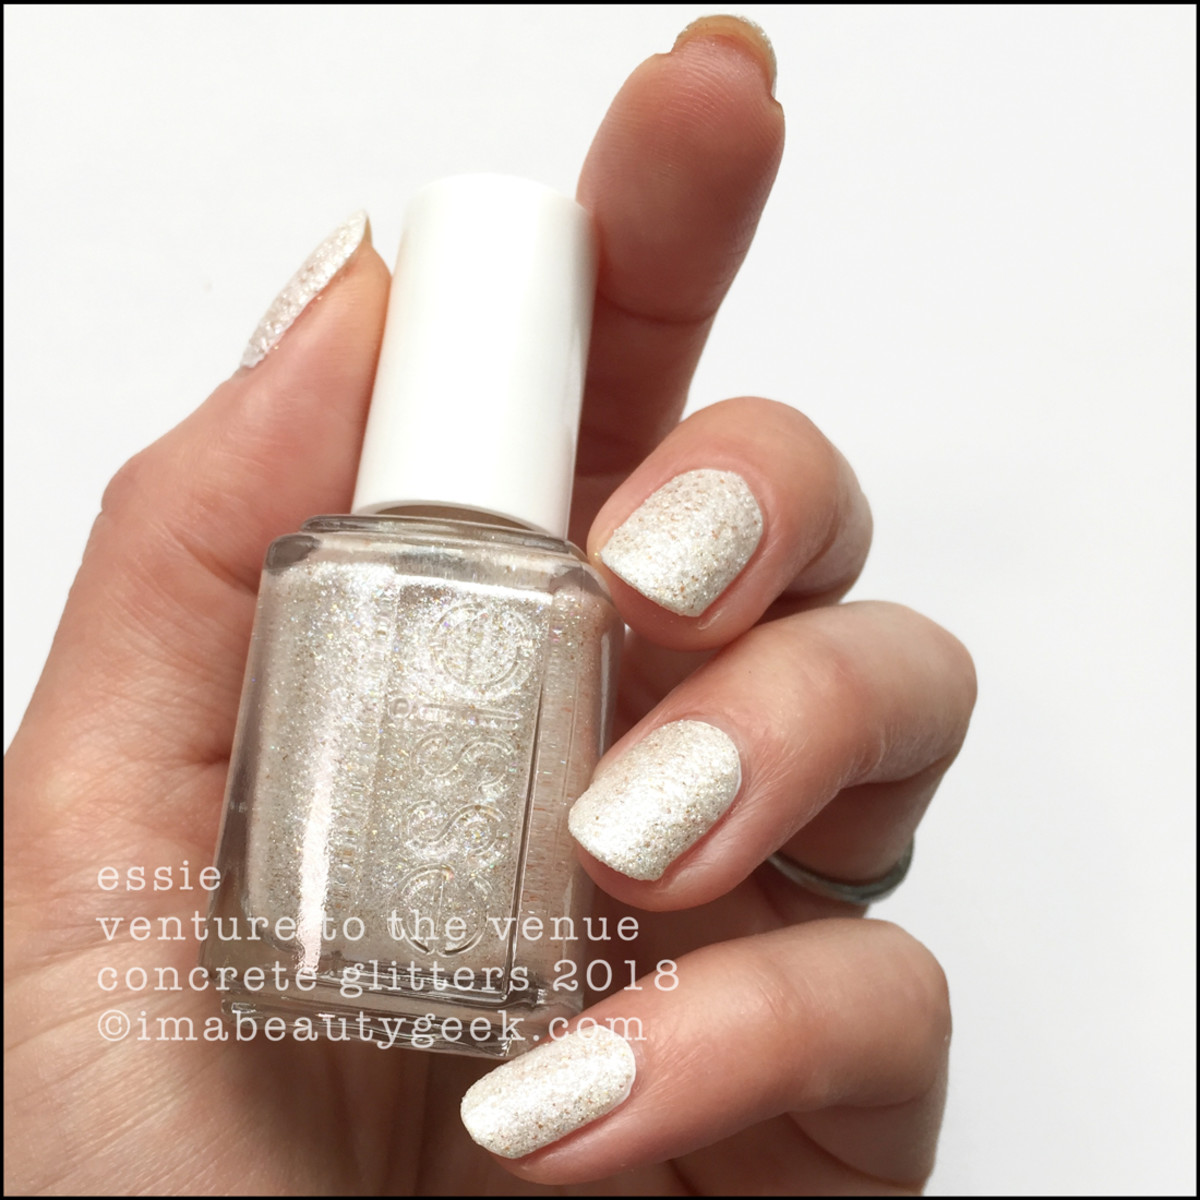 Essie Venture to the Venue - Essie Concrete Glitters 2018 Swatches